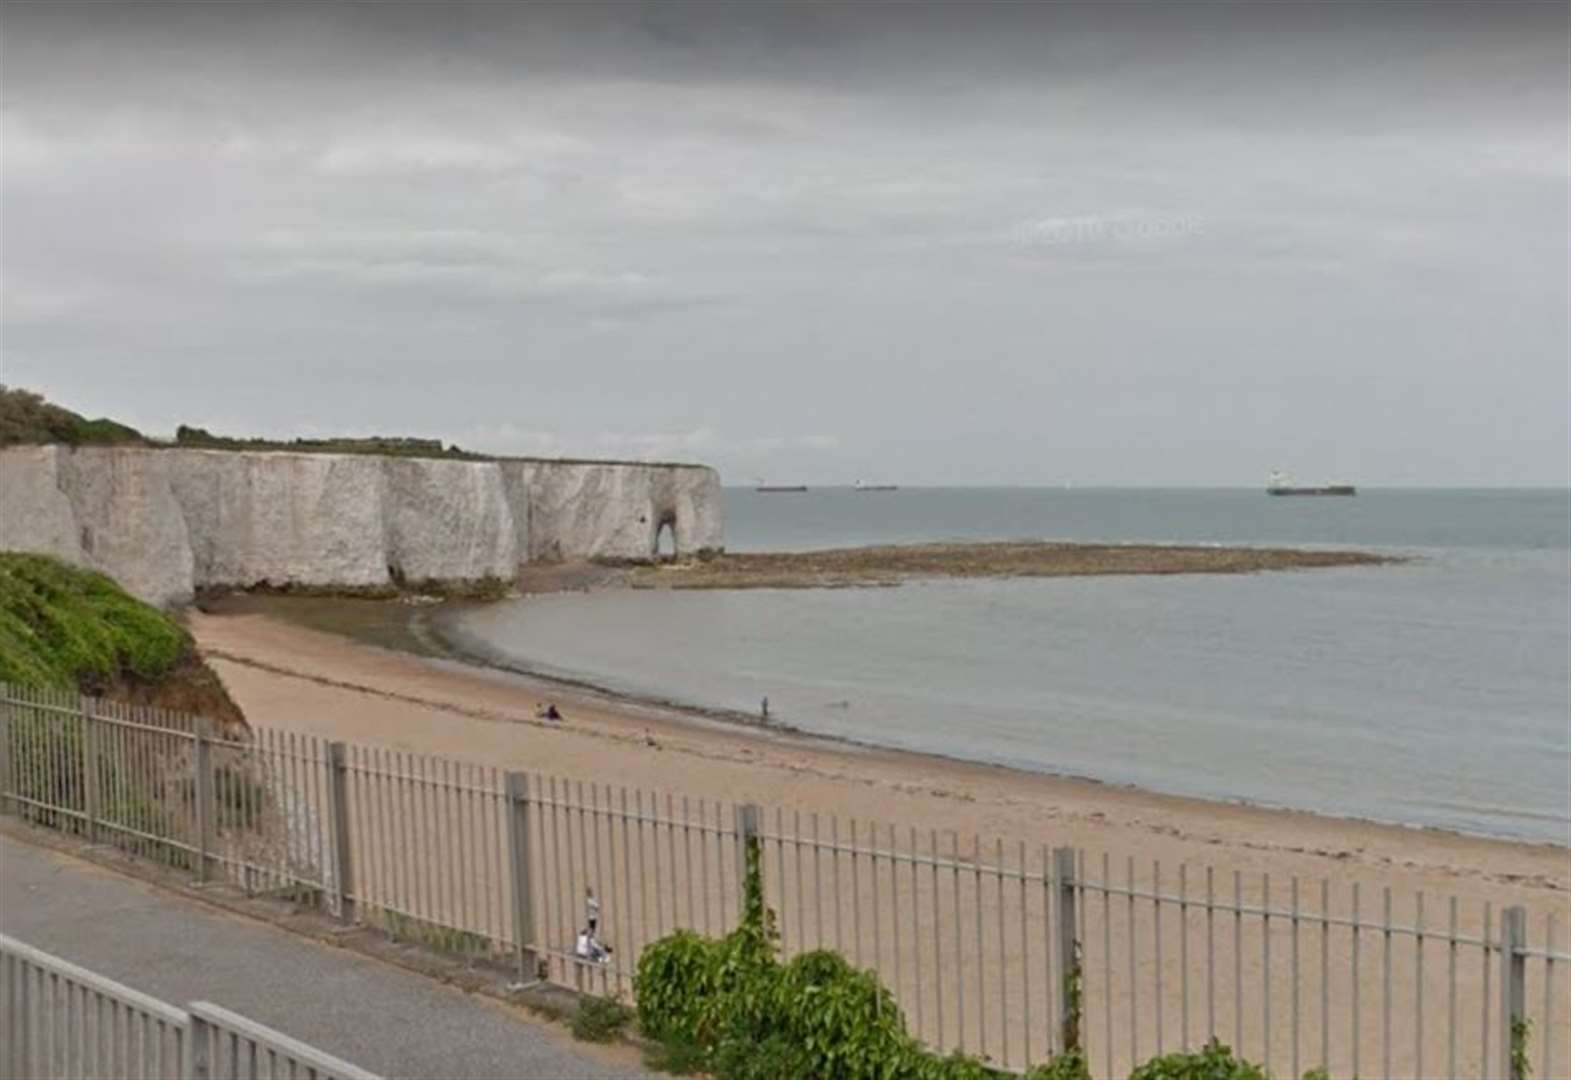 Body of woman in 70s found at beach